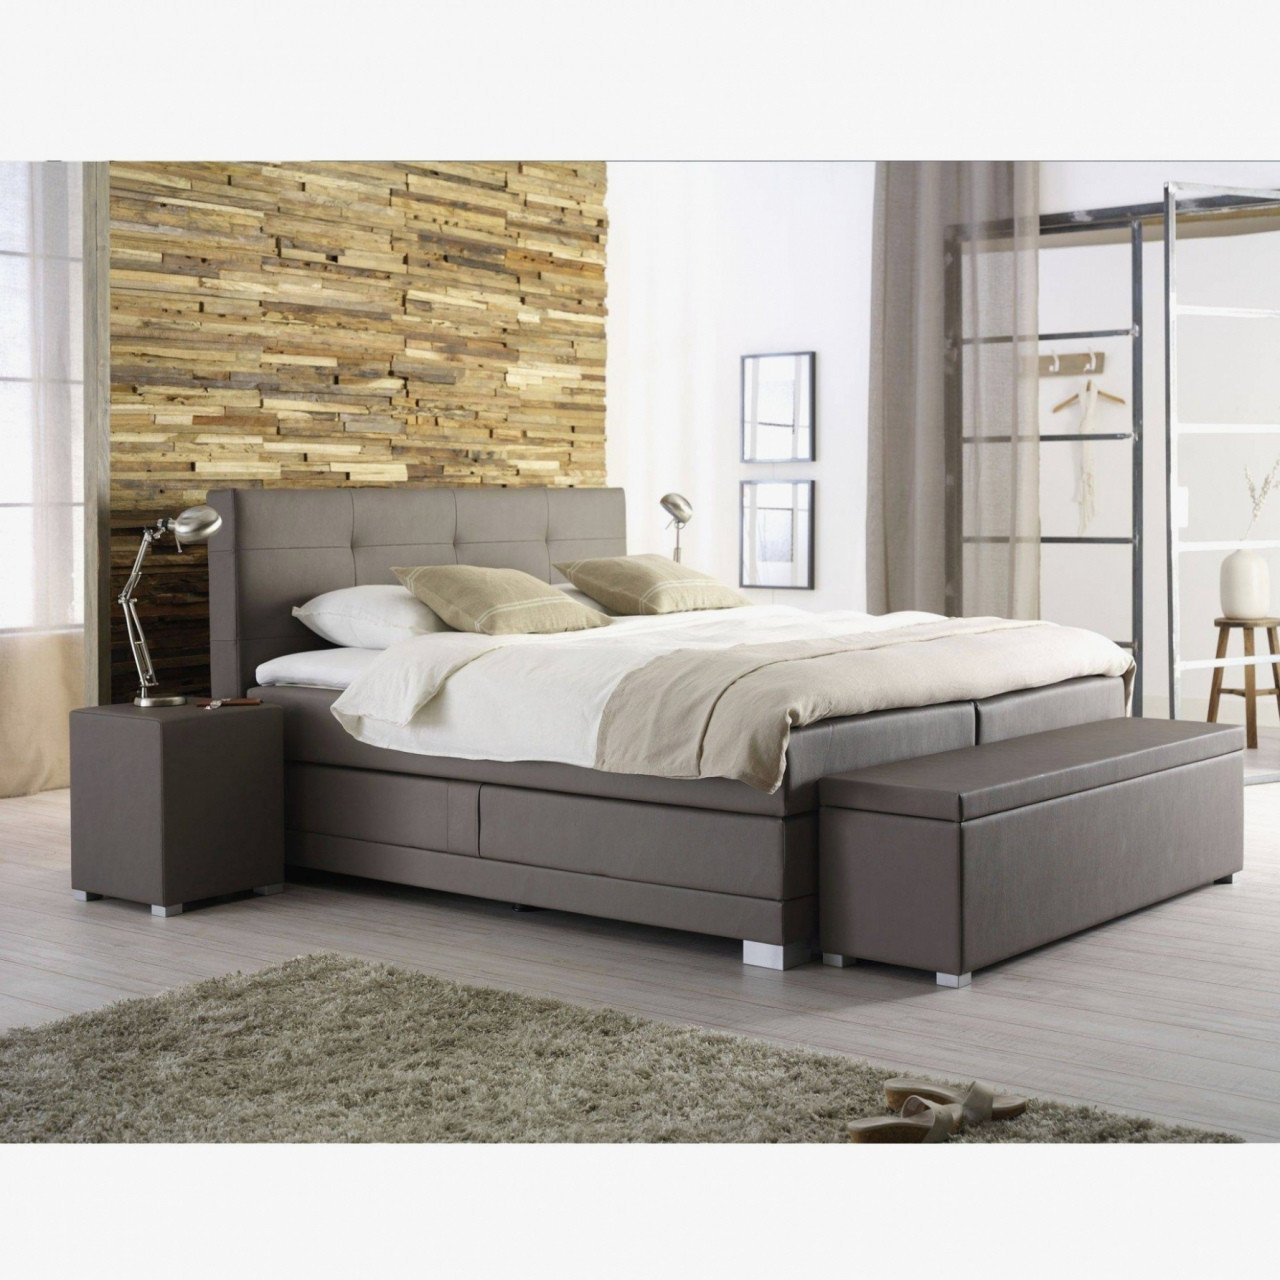 Black Twin Bedroom Set Awesome Bed with Drawers — Procura Home Blog